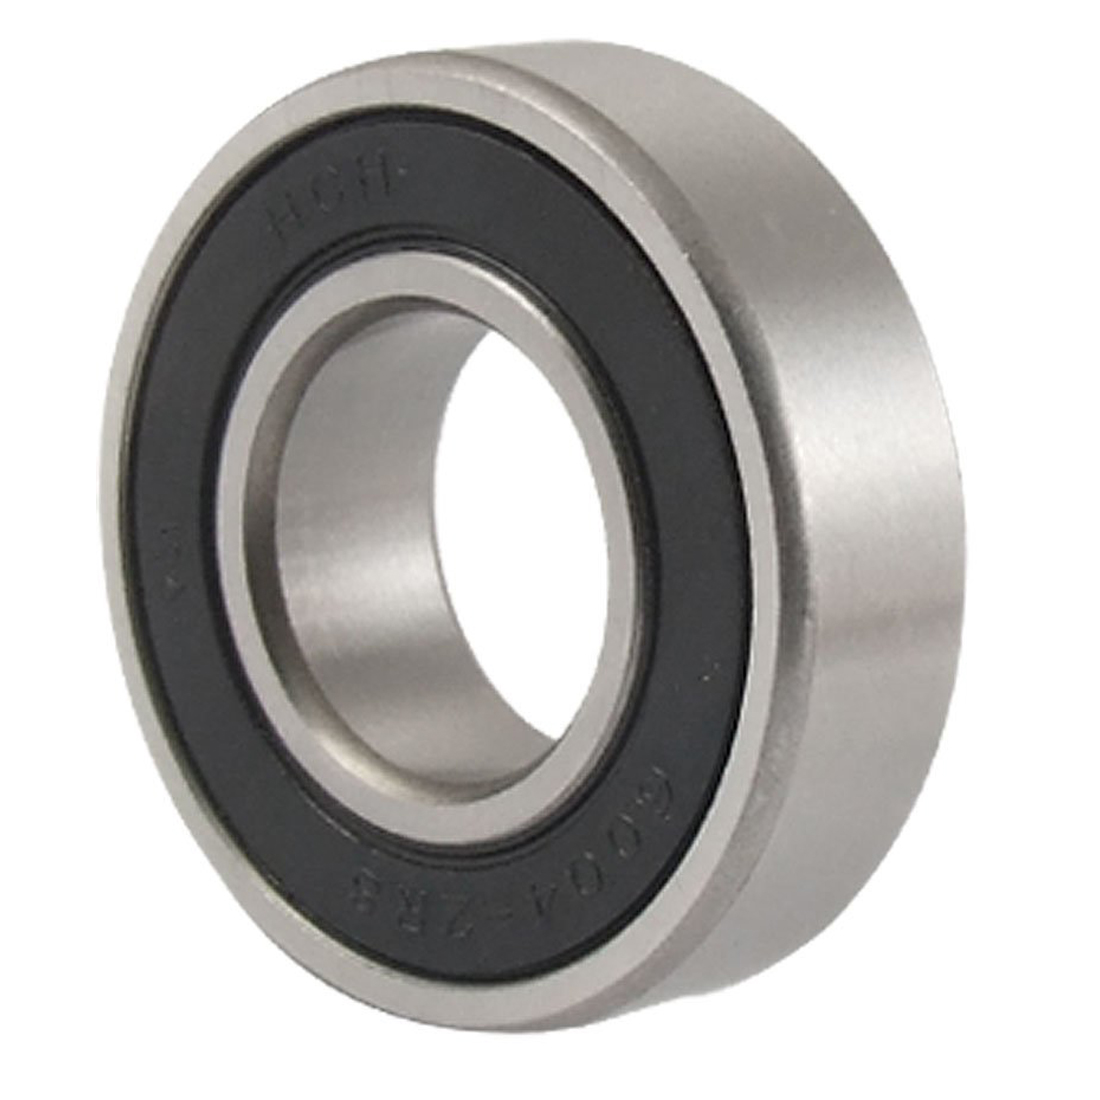 6004-2RS Double Side Sealed Ball Bearing 20mm x 42mm x 12mm 1pc 6217 2rs 6217rs rubber sealed ball bearing 85 x 150 x 28mm